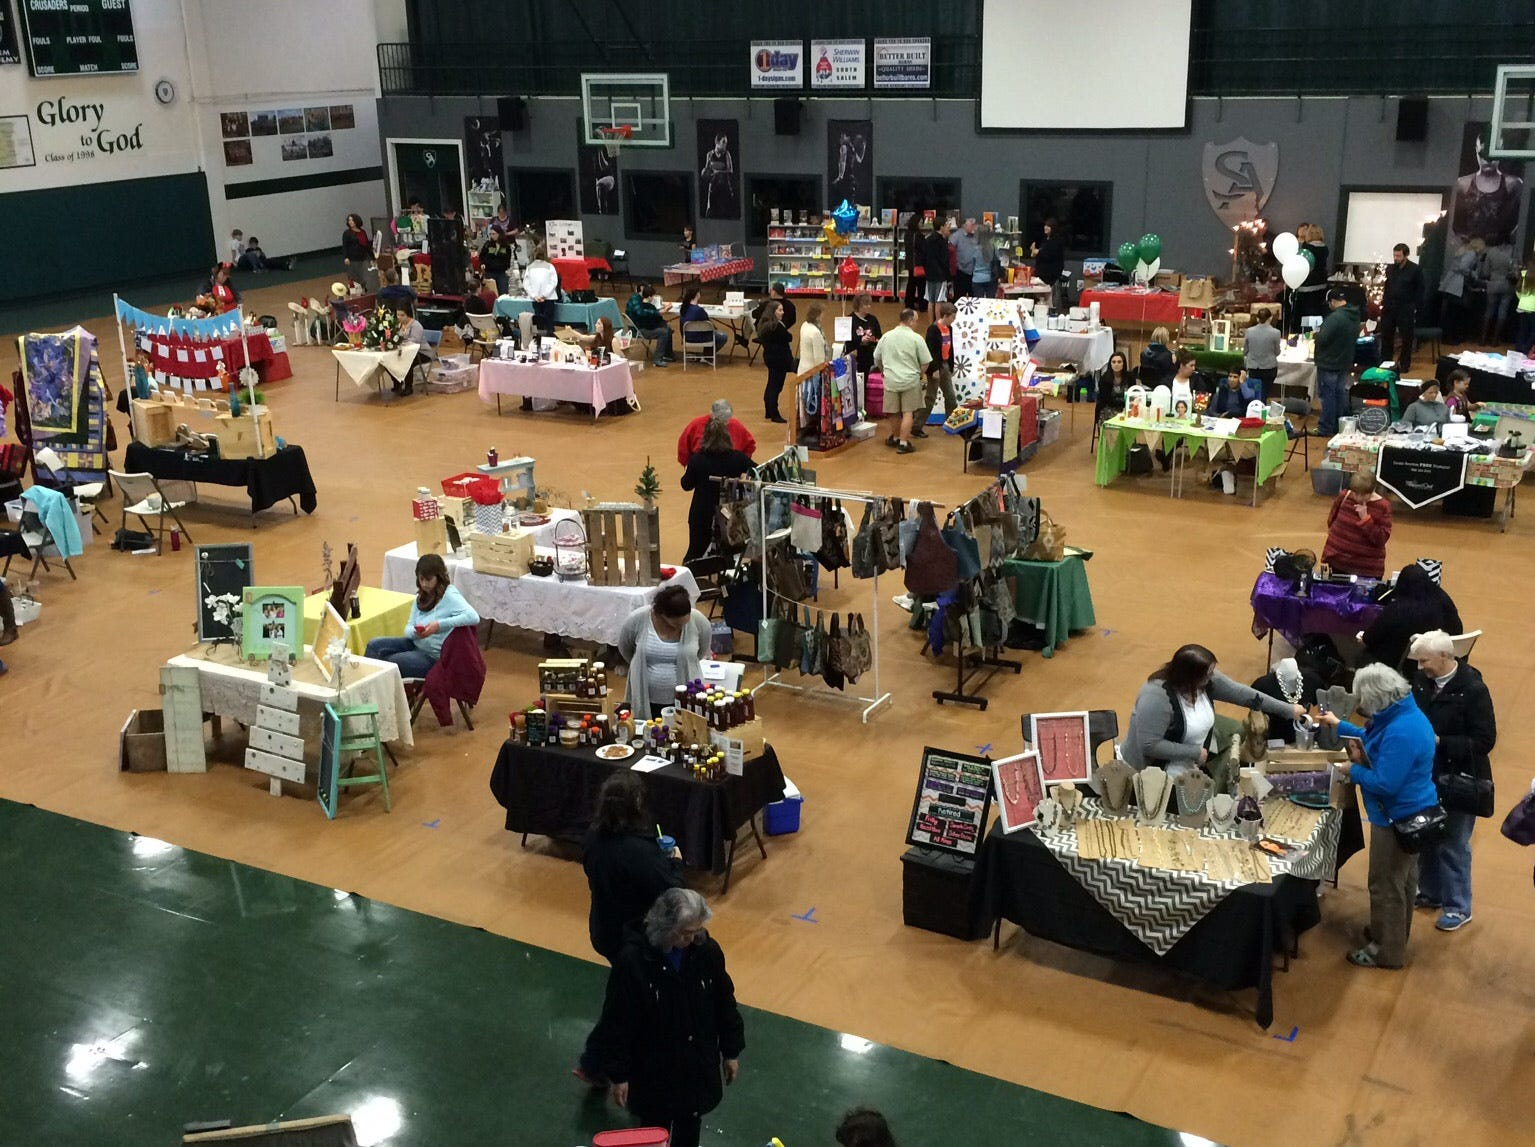 Salem Academy Christmas Market:Craft bazaar featuring quilts, blankets, Christmas decorations, metalwork and more to raise money for the school's 8th grade Washington, D.C., trip in the spring, 9 a.m. to 4 p.m. Saturday, Nov. 10, Salem Academy, 942 Lancaster Drive NE, Salem. www.facebook.com/events/481811452296026.